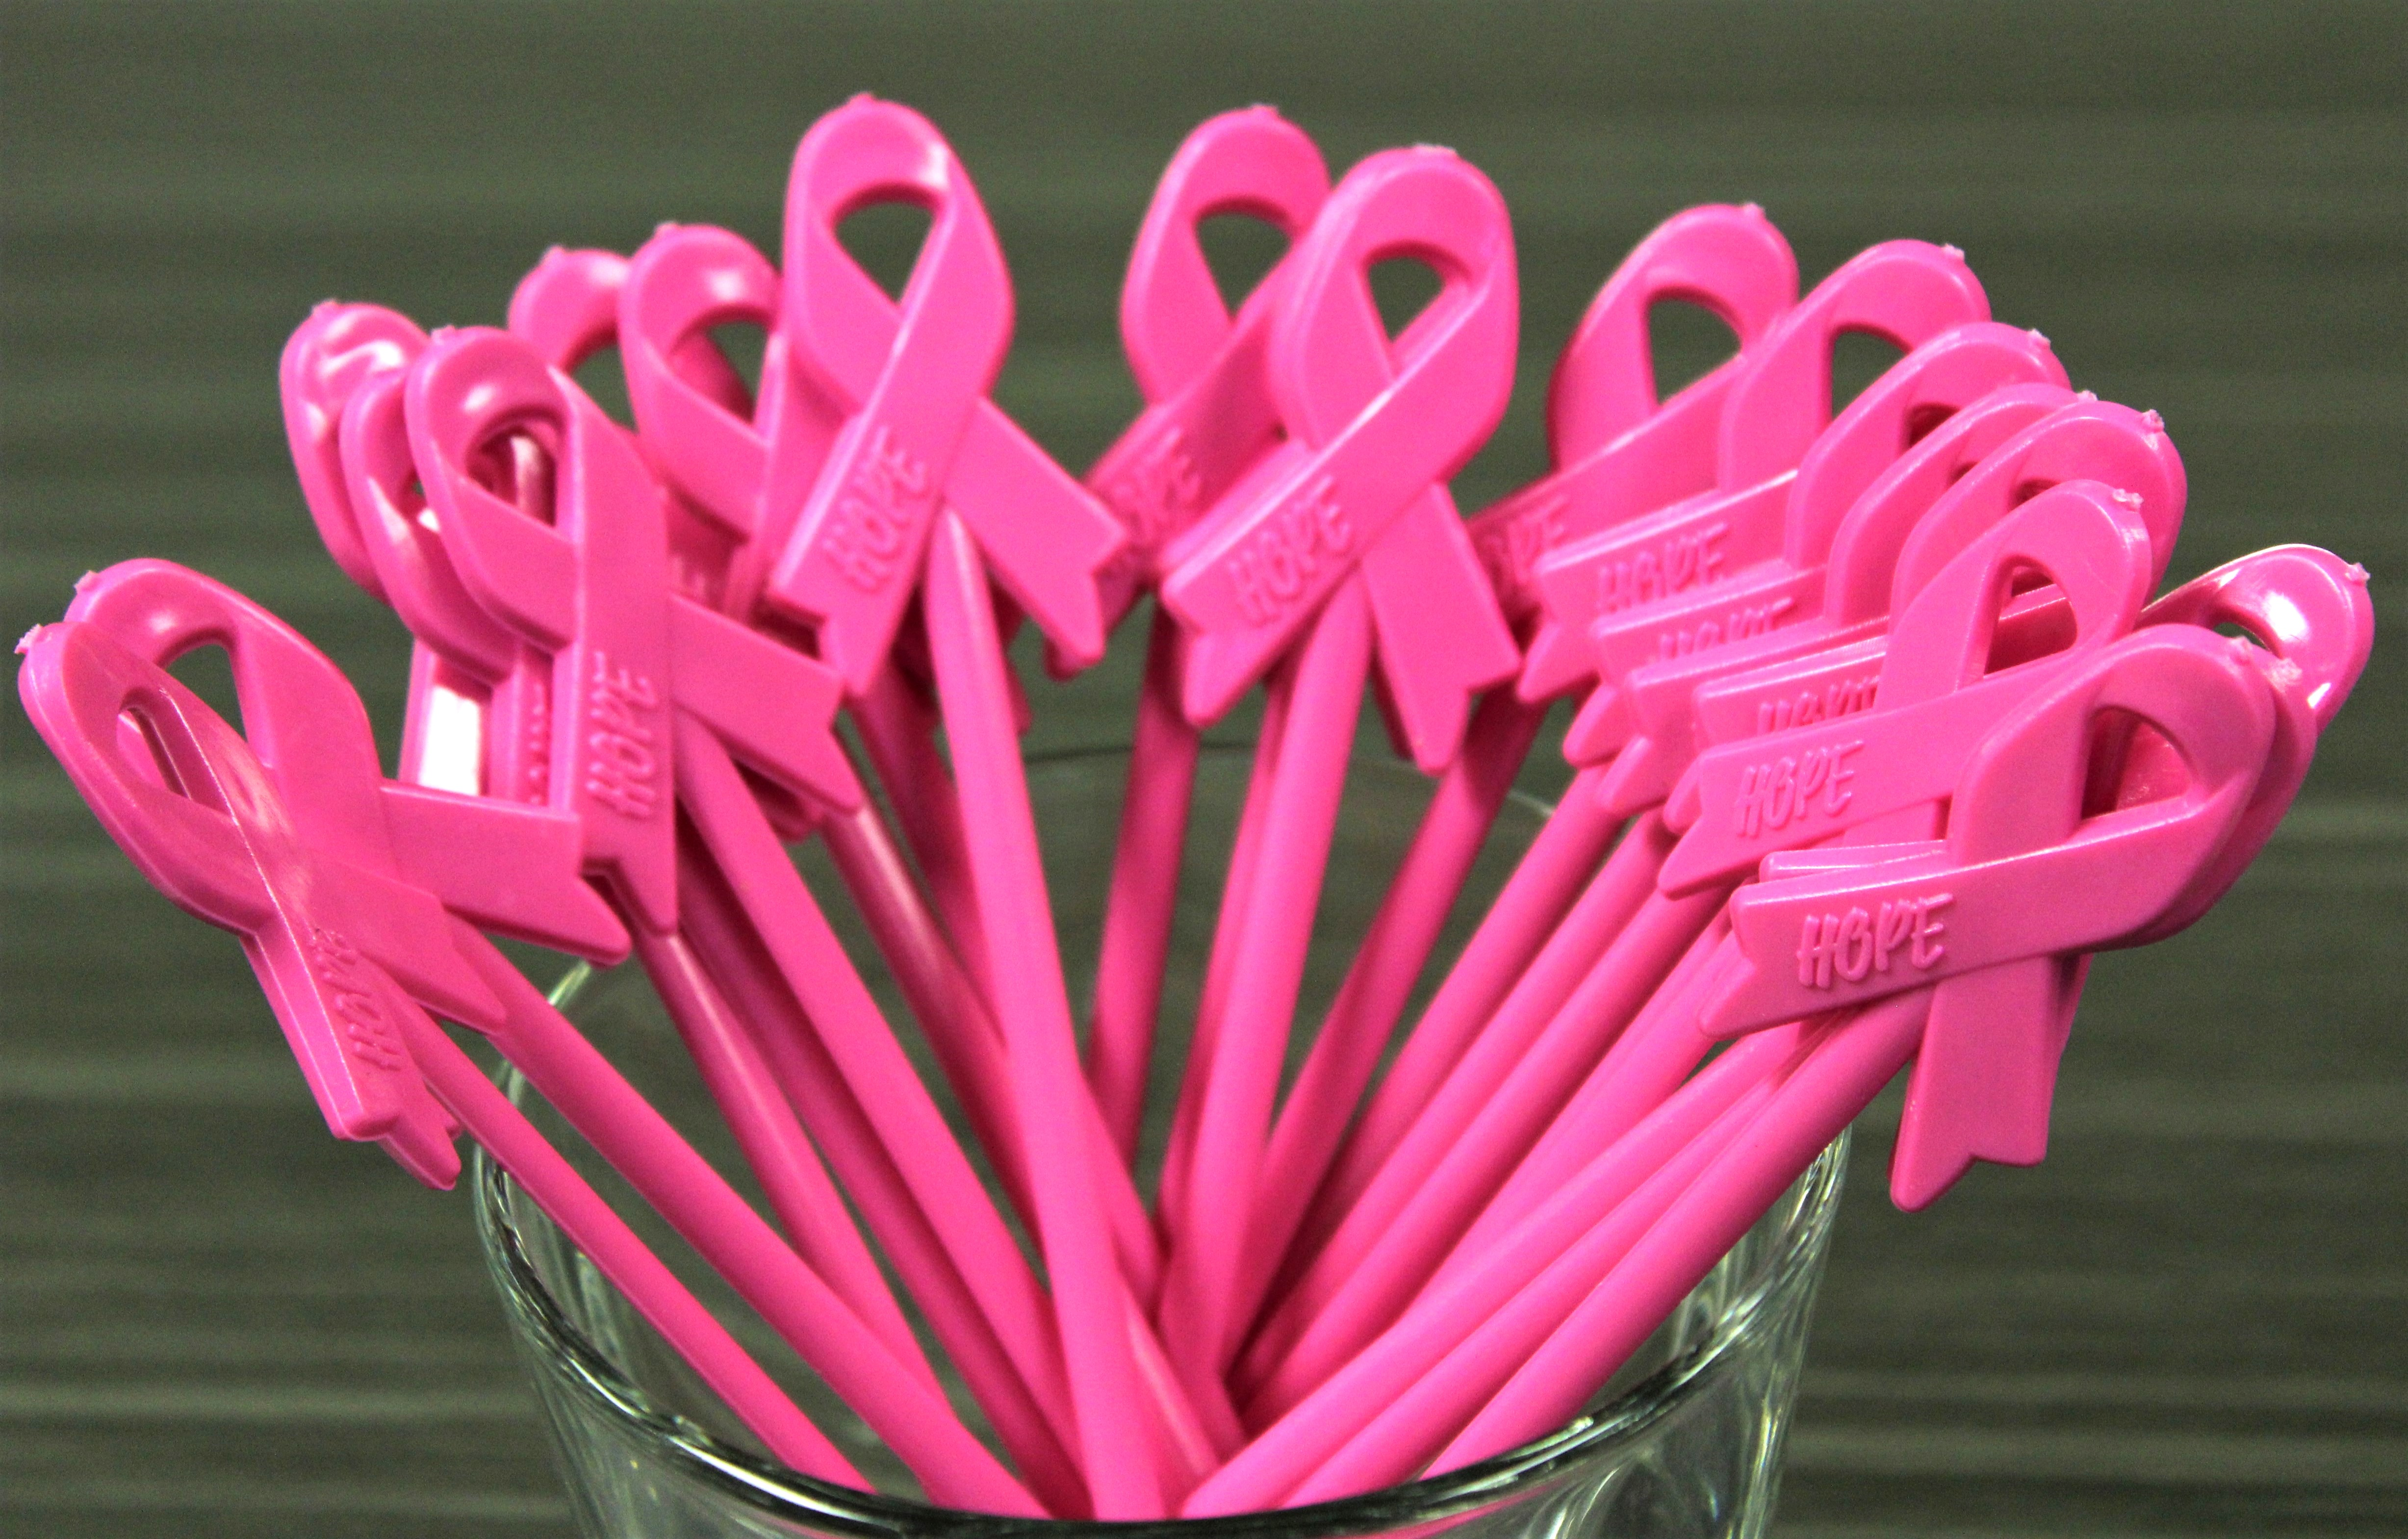 Breast Cancer Awareness Ribbon Swizzle Sticks